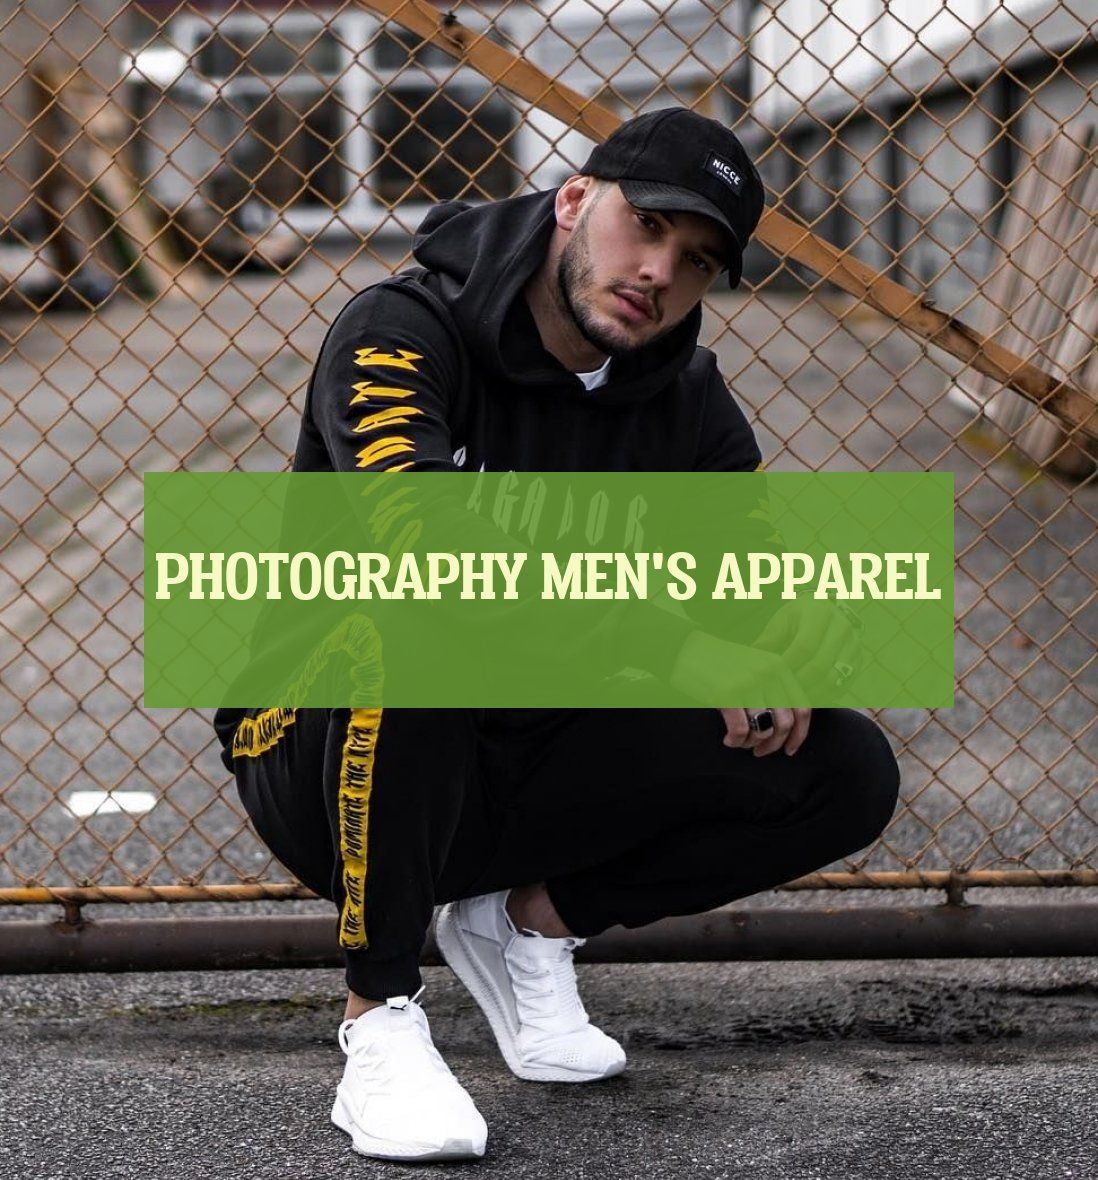 Photography Men's Apparel Fotografie Herrenbekleidung